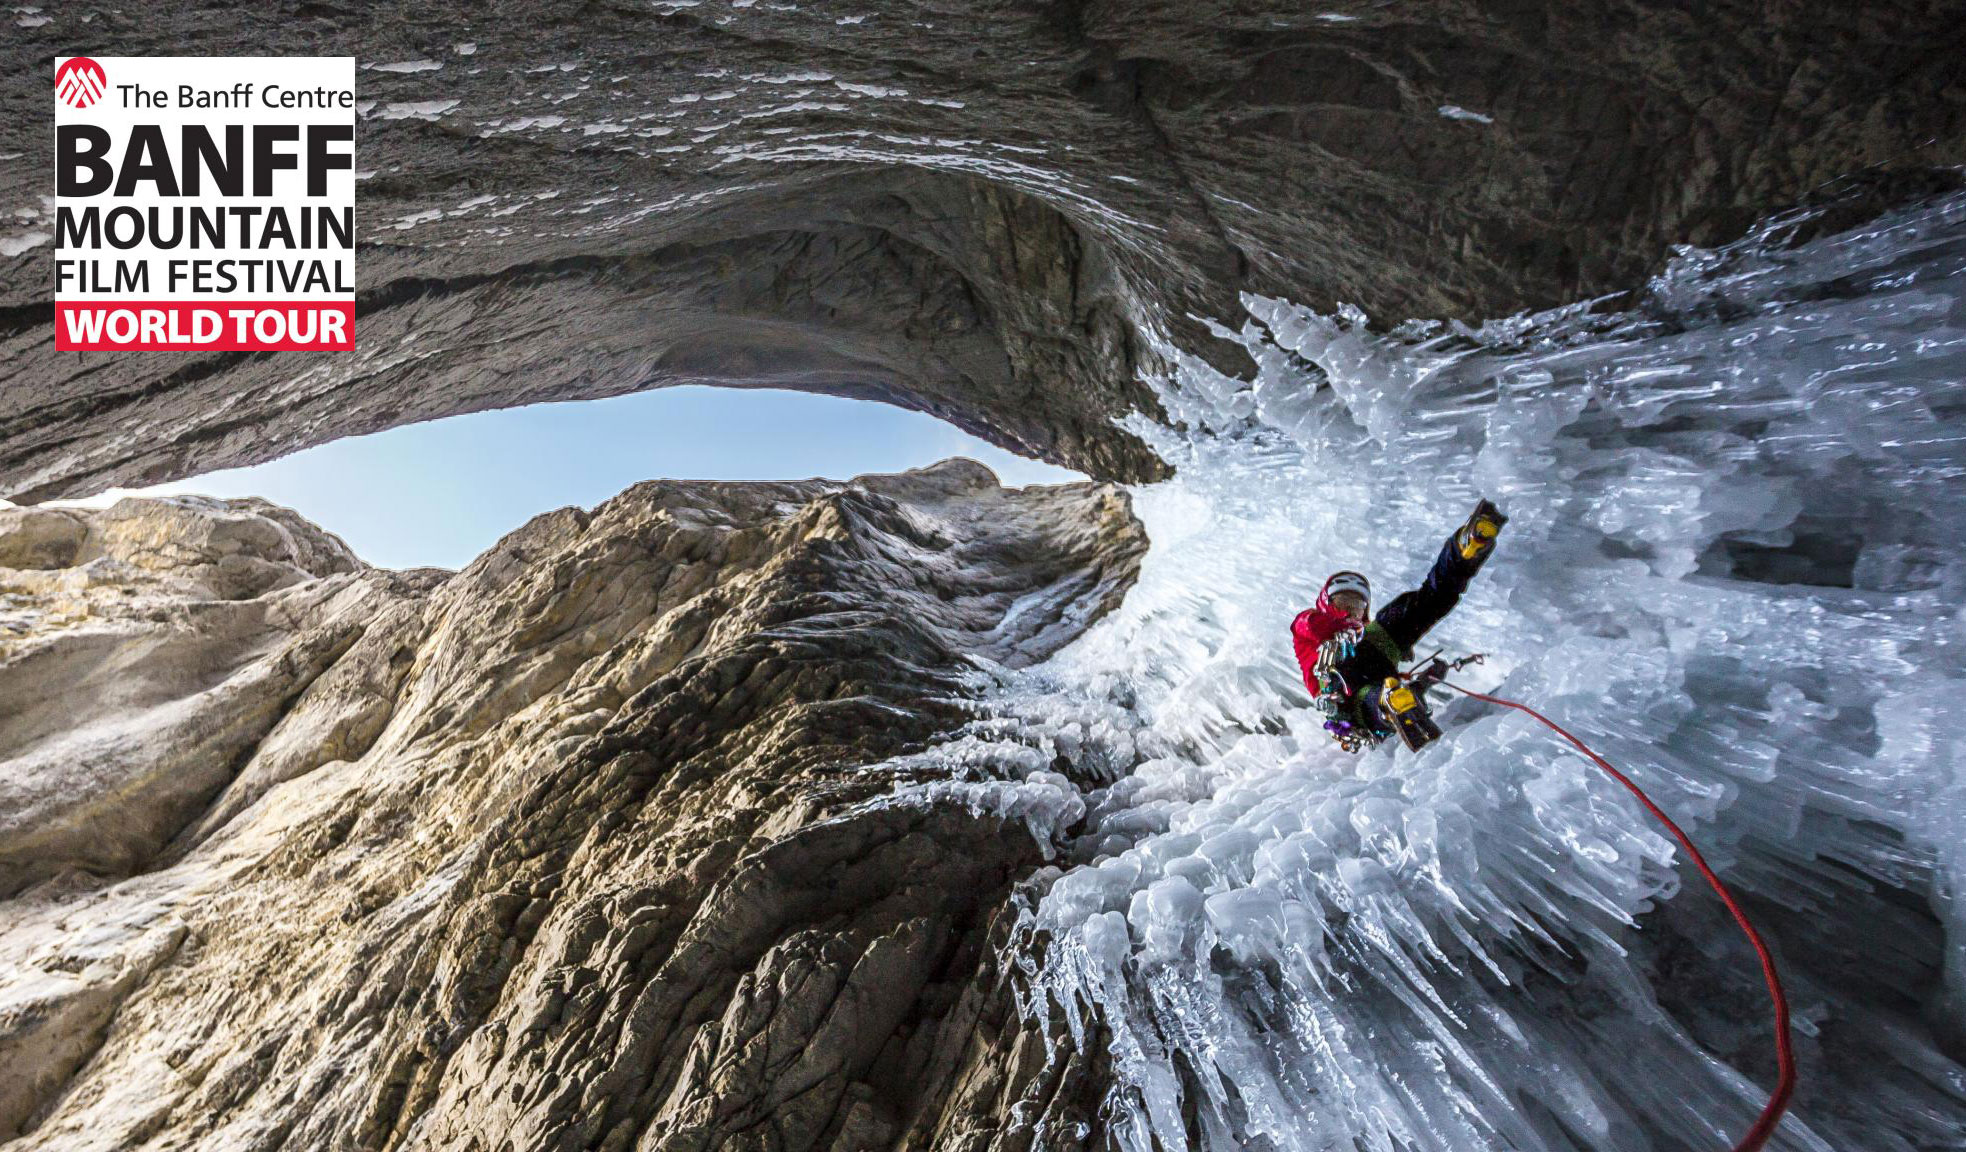 8 Epic Outdoor Documentaries to Inspire You 2